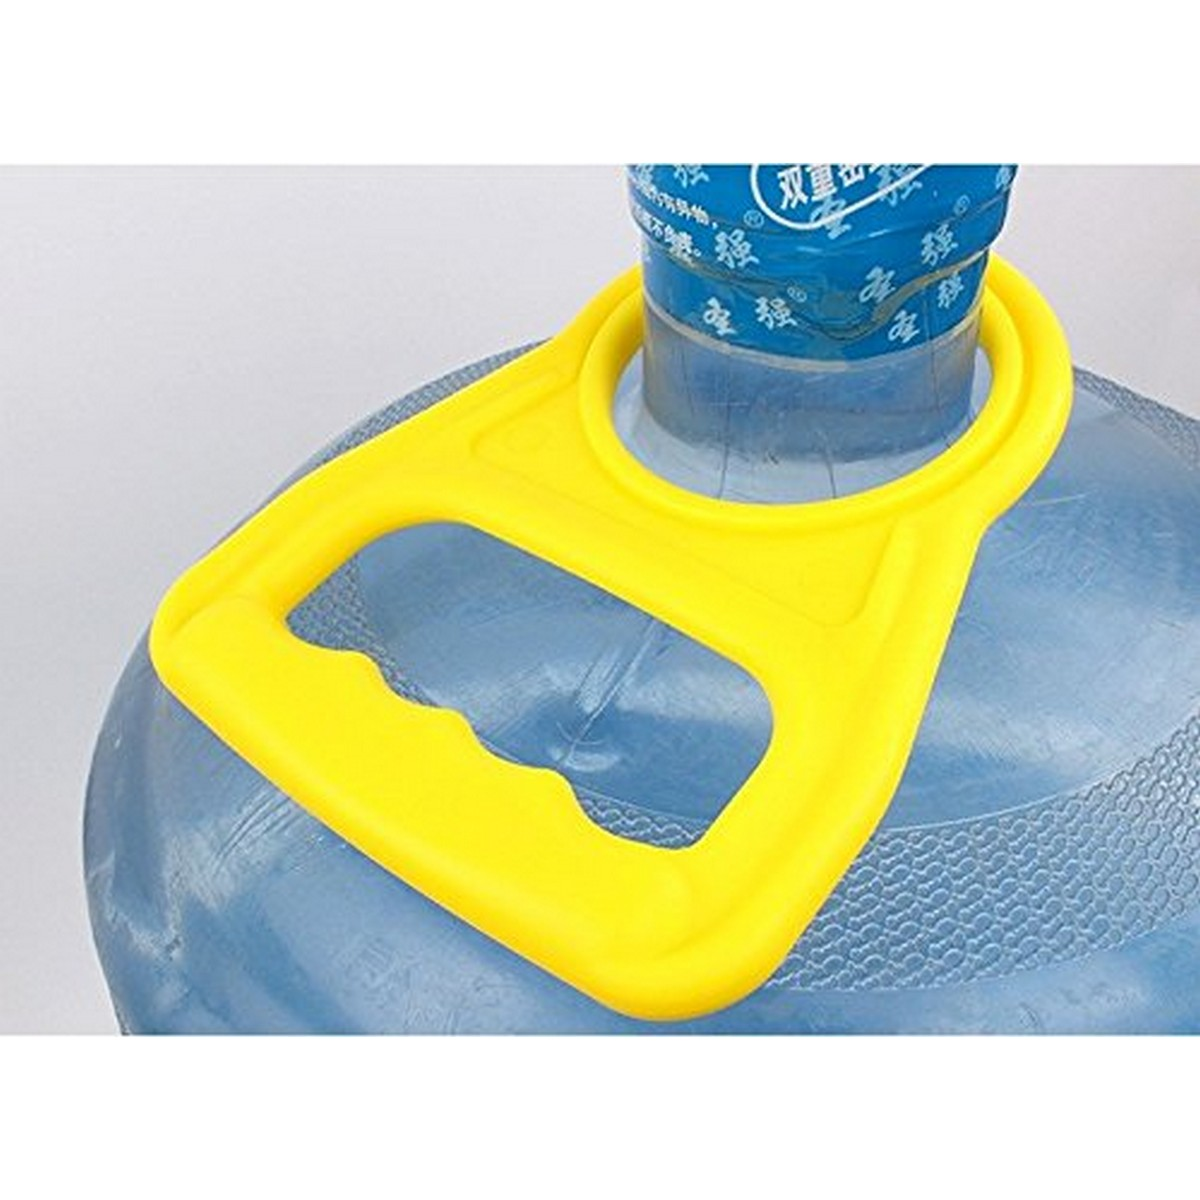 Flat/Curve Water Bottle Handle - Easy Lifting For 19 Liter Water Bottle